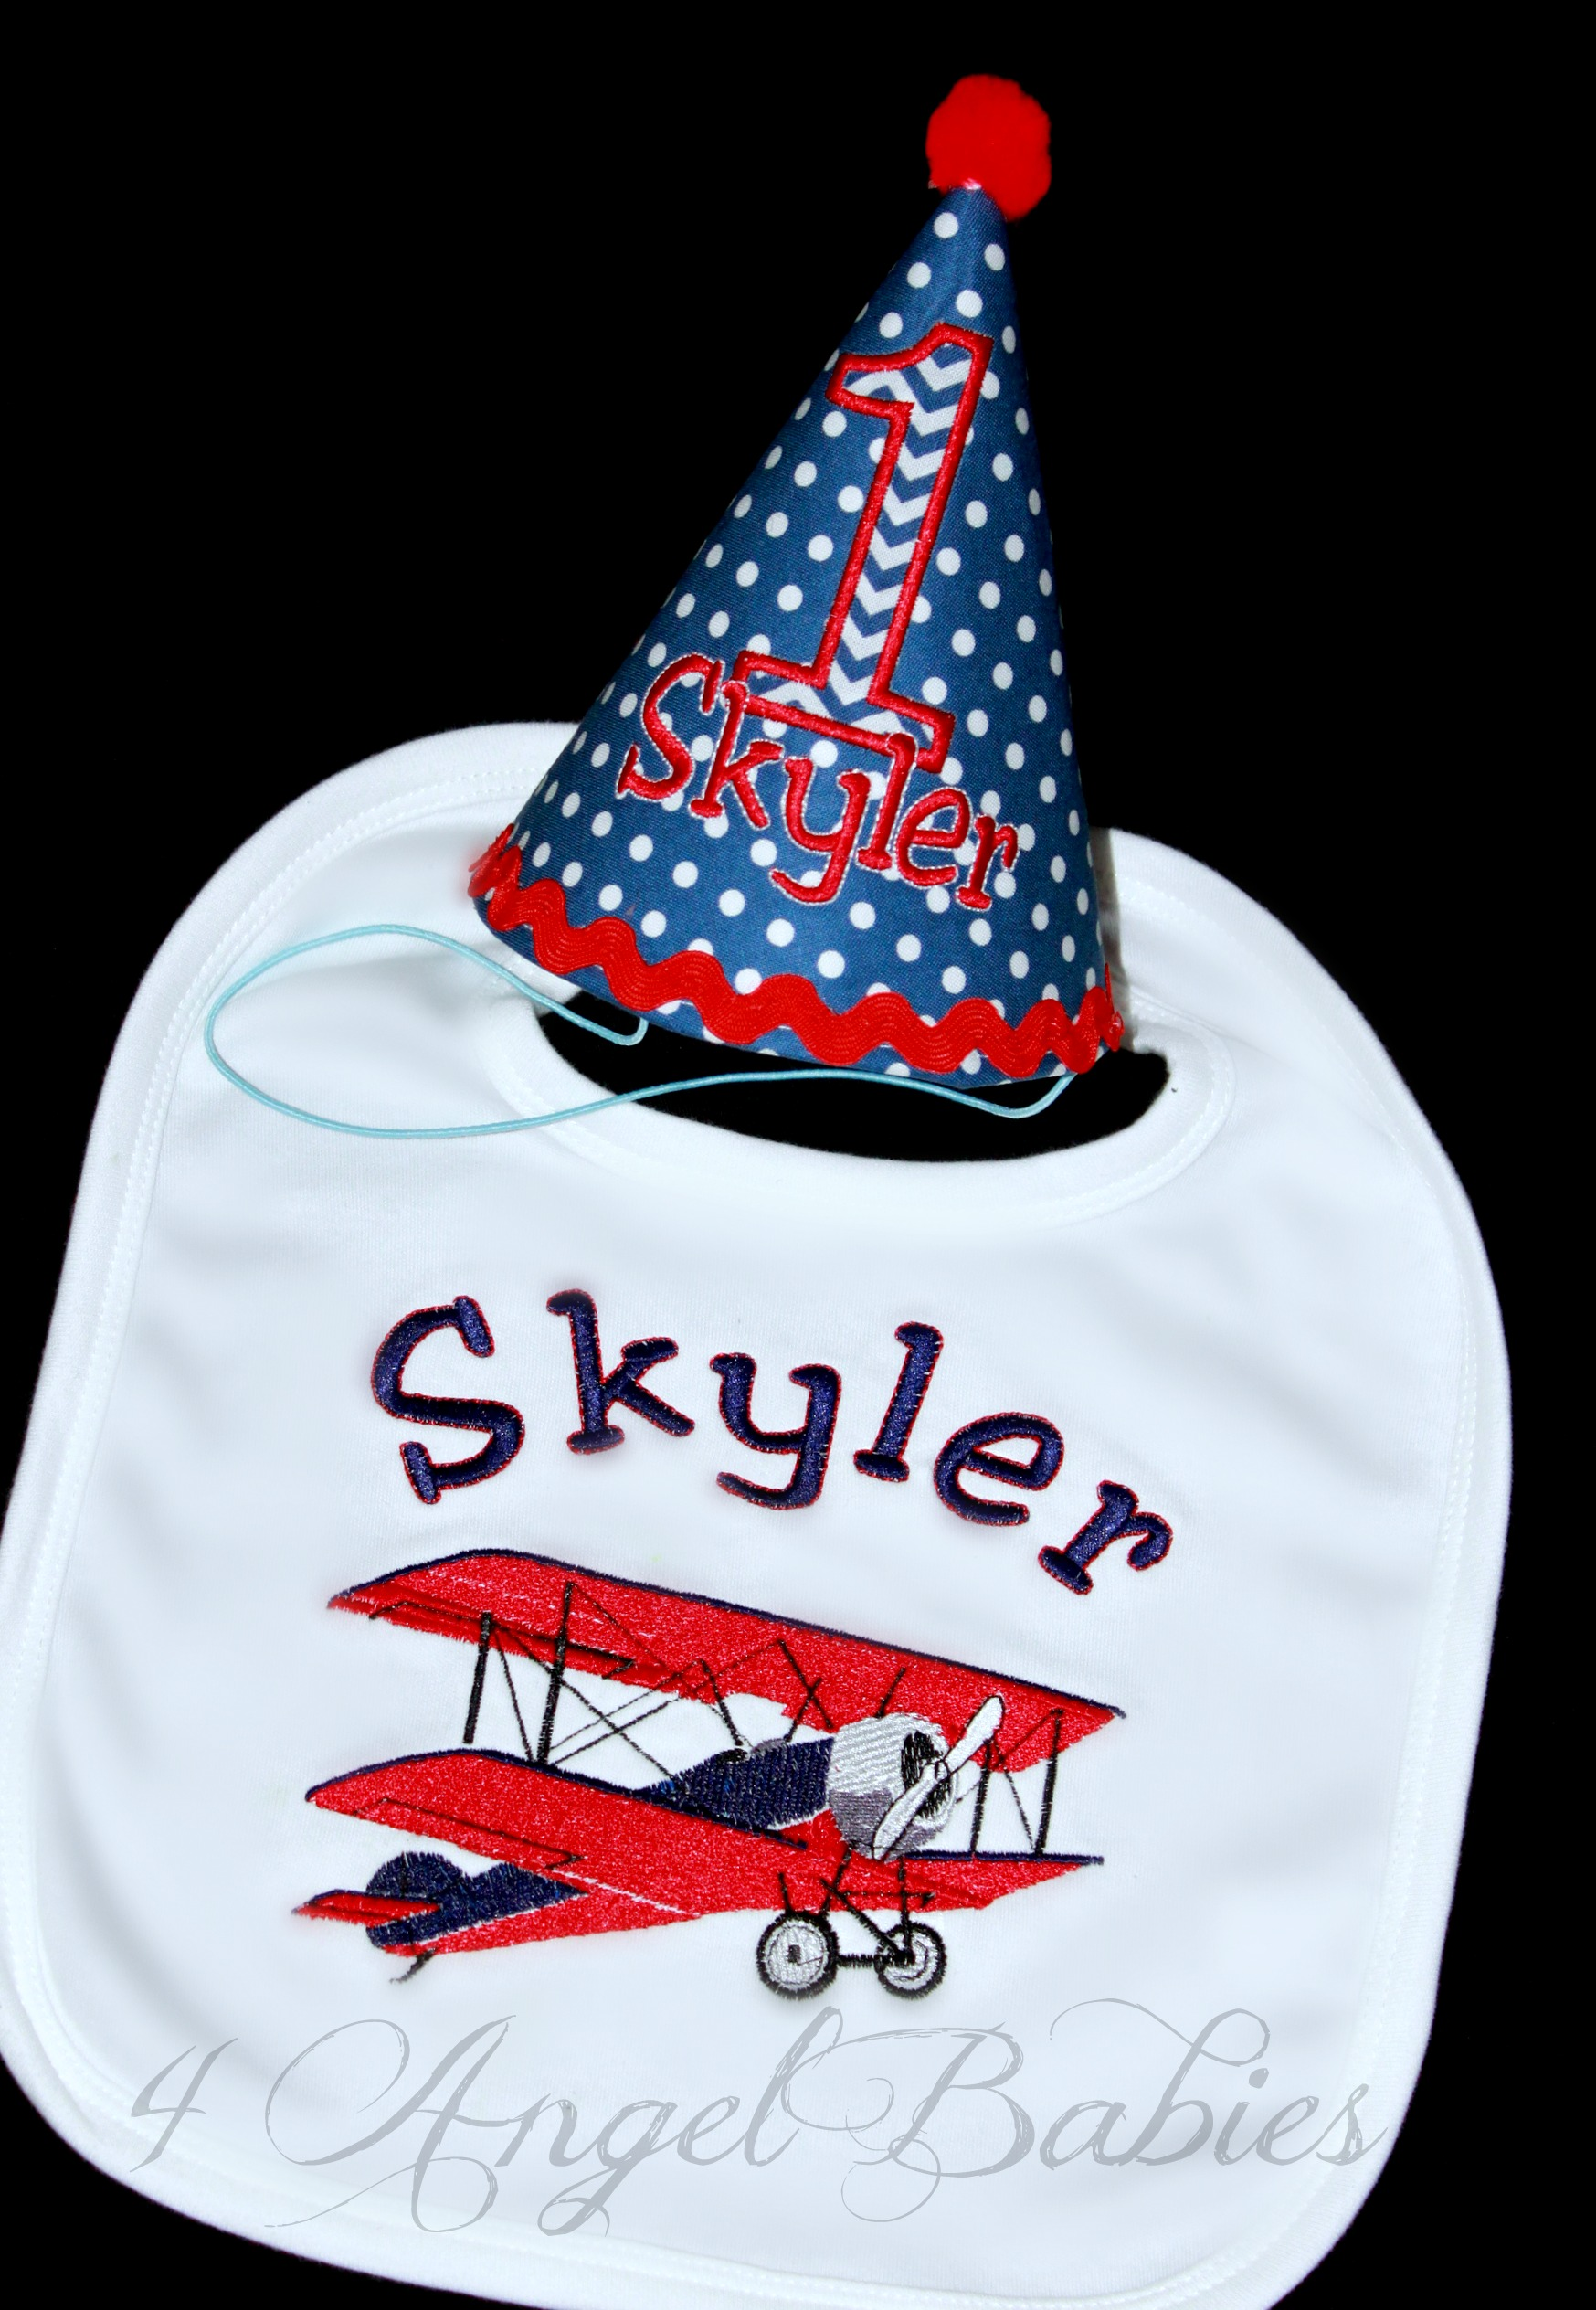 BIPLANE Vintage Airplane Boys Birthday Hat and Bib Set Red, Blue